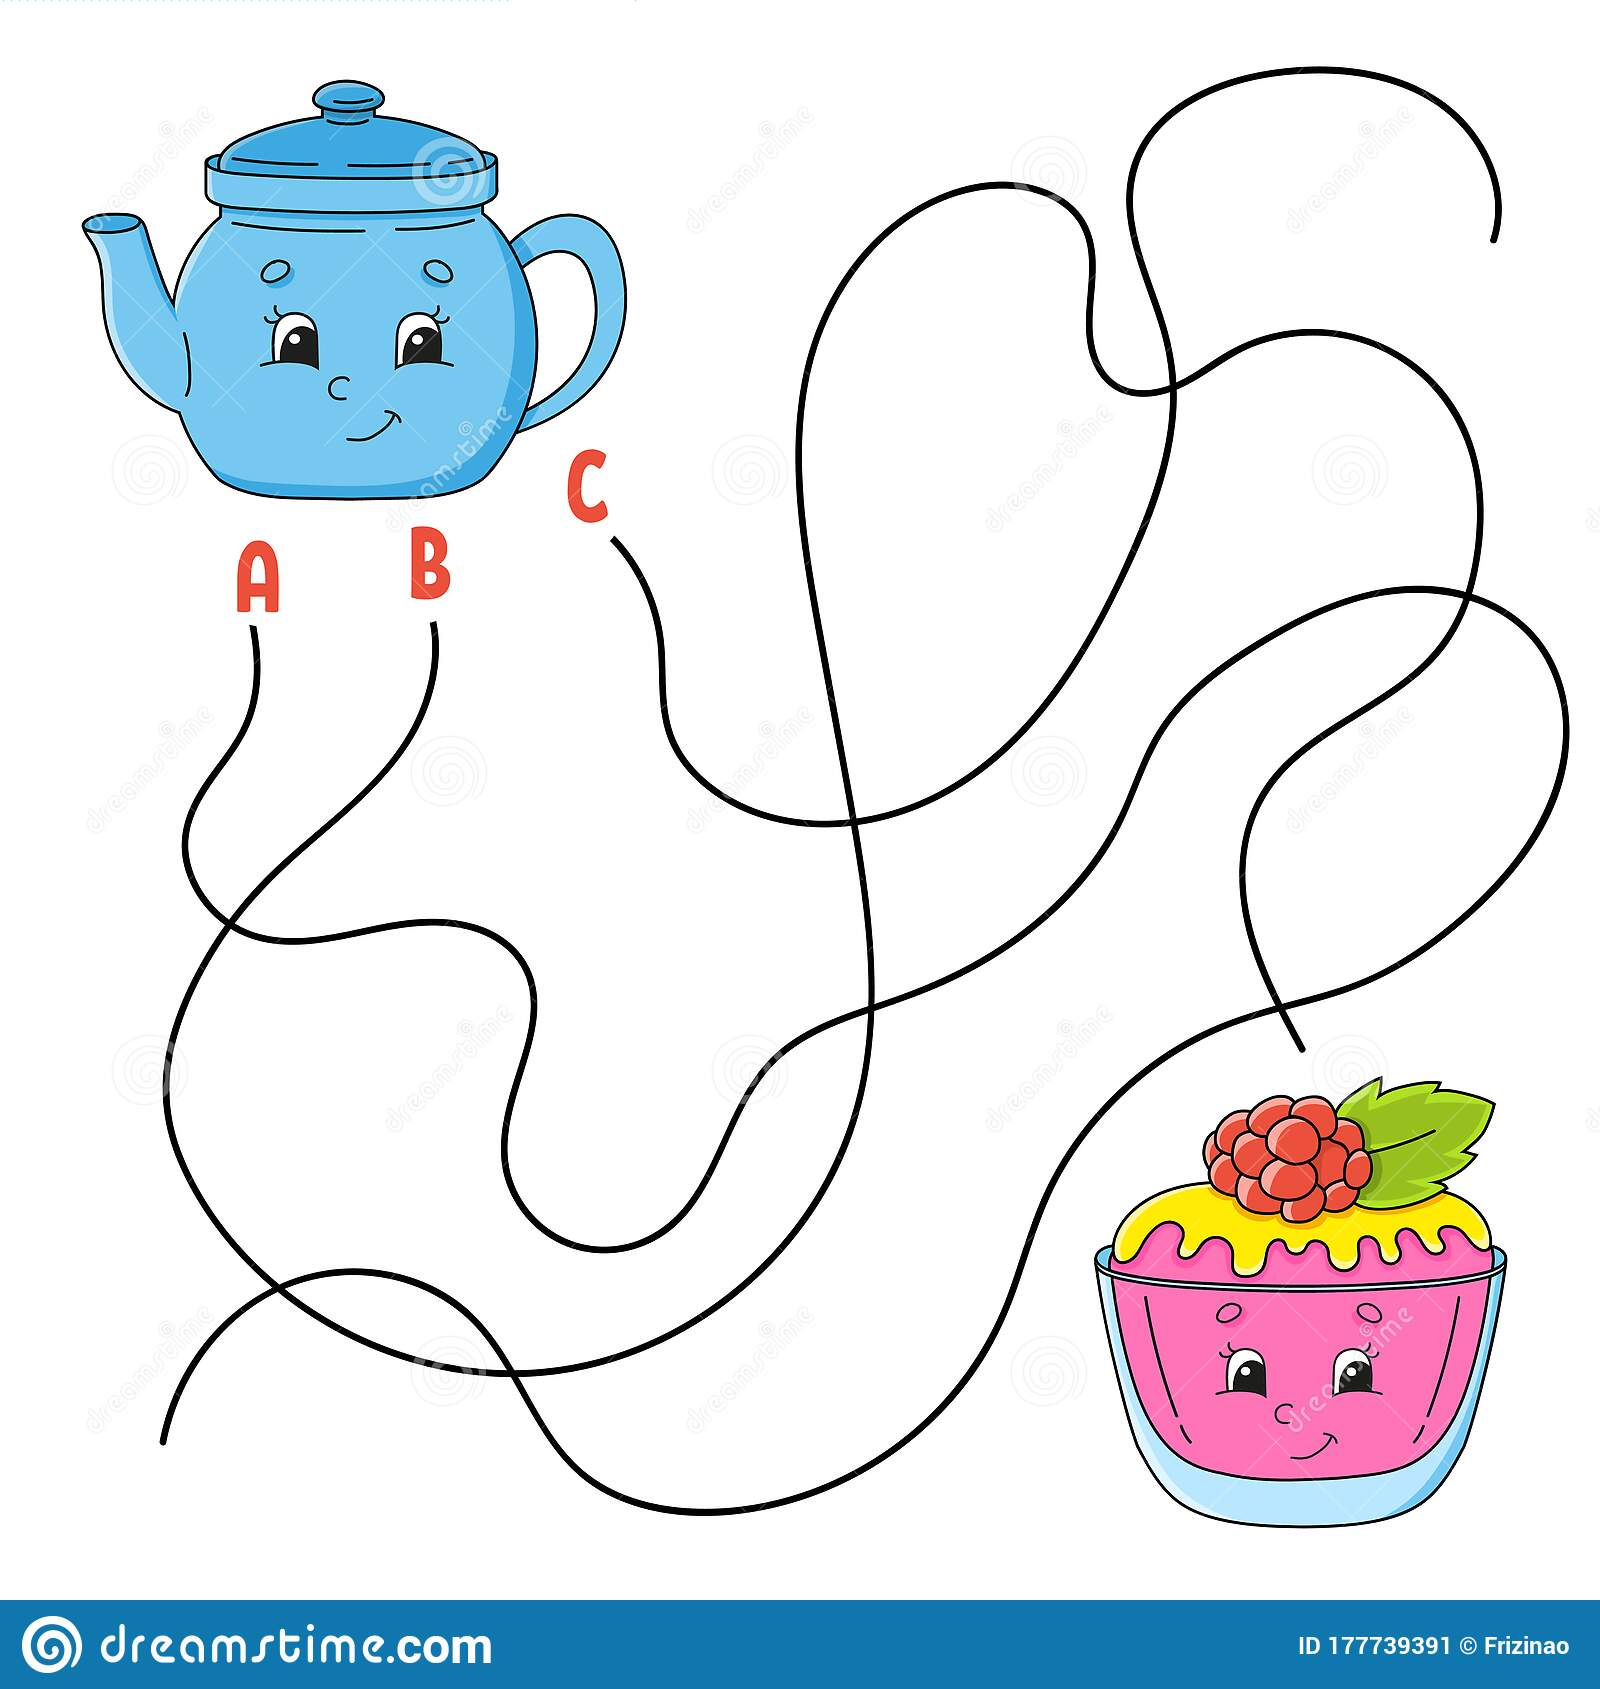 Easy Maze Teapot And Cake Labyrinth For Kids Activity